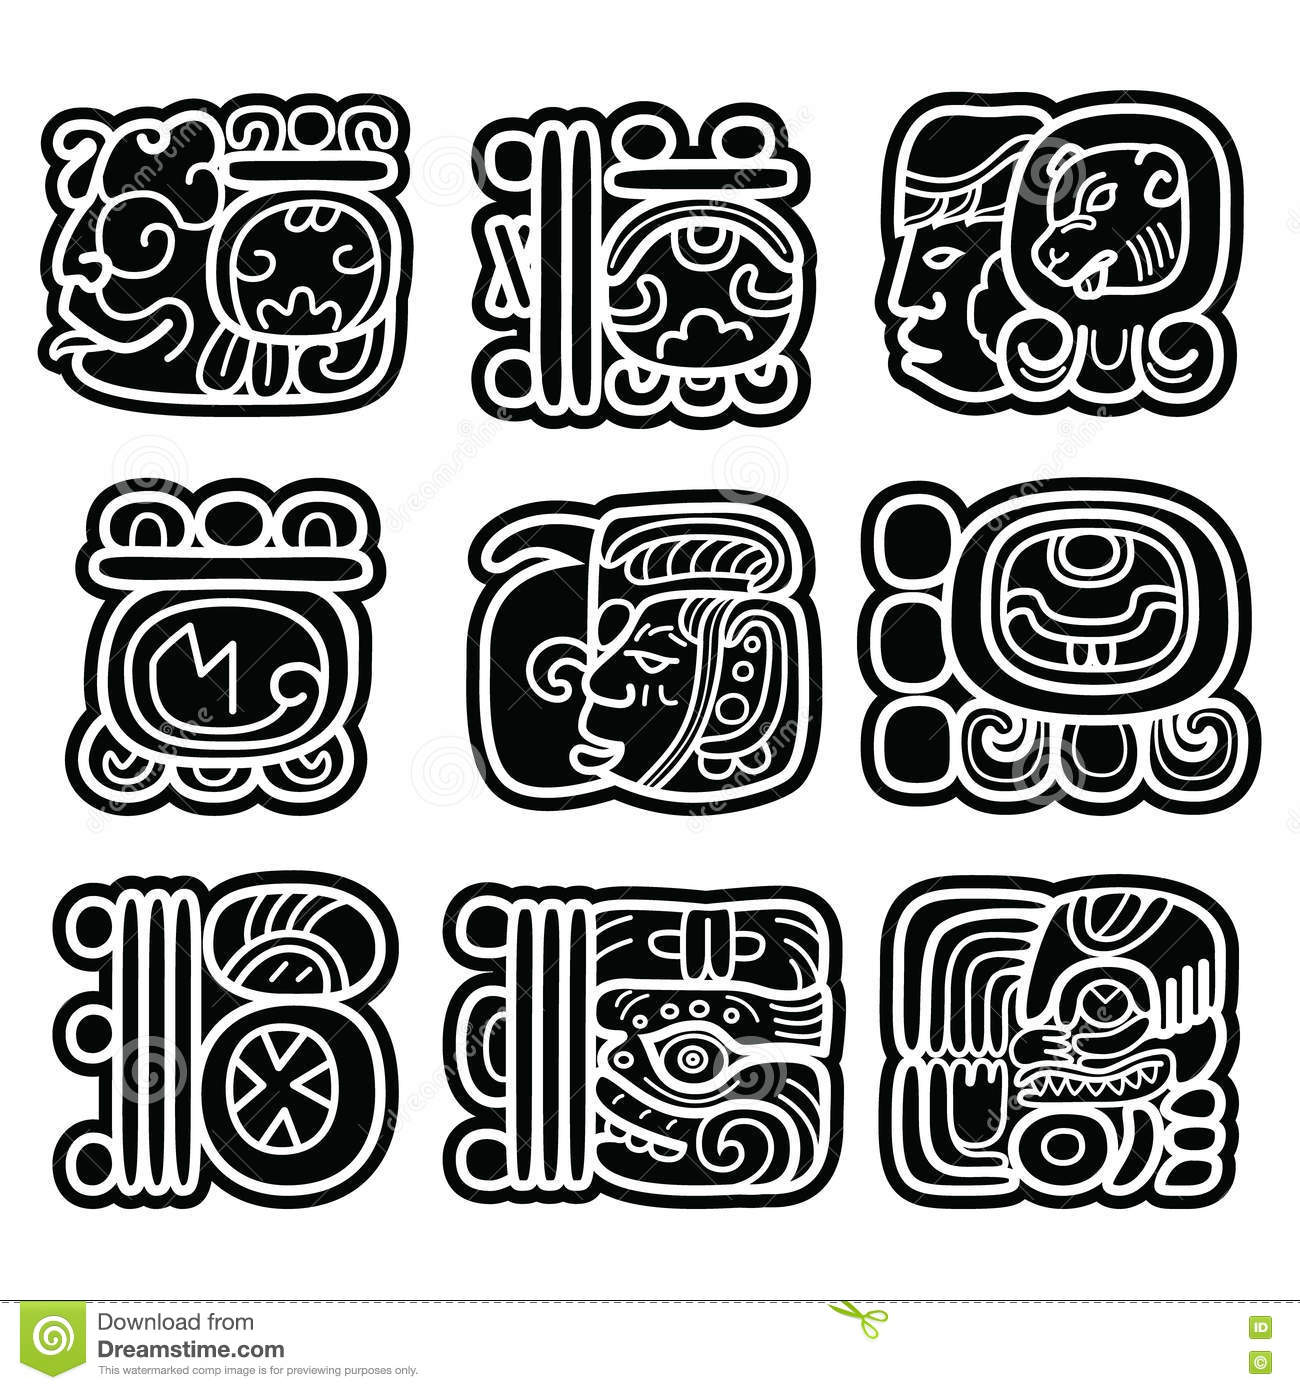 spanish script essay Philippines and the spanish the ancient script of craftsmanship and agriculture before the spanish colonizers came rizal's essay has served as a.